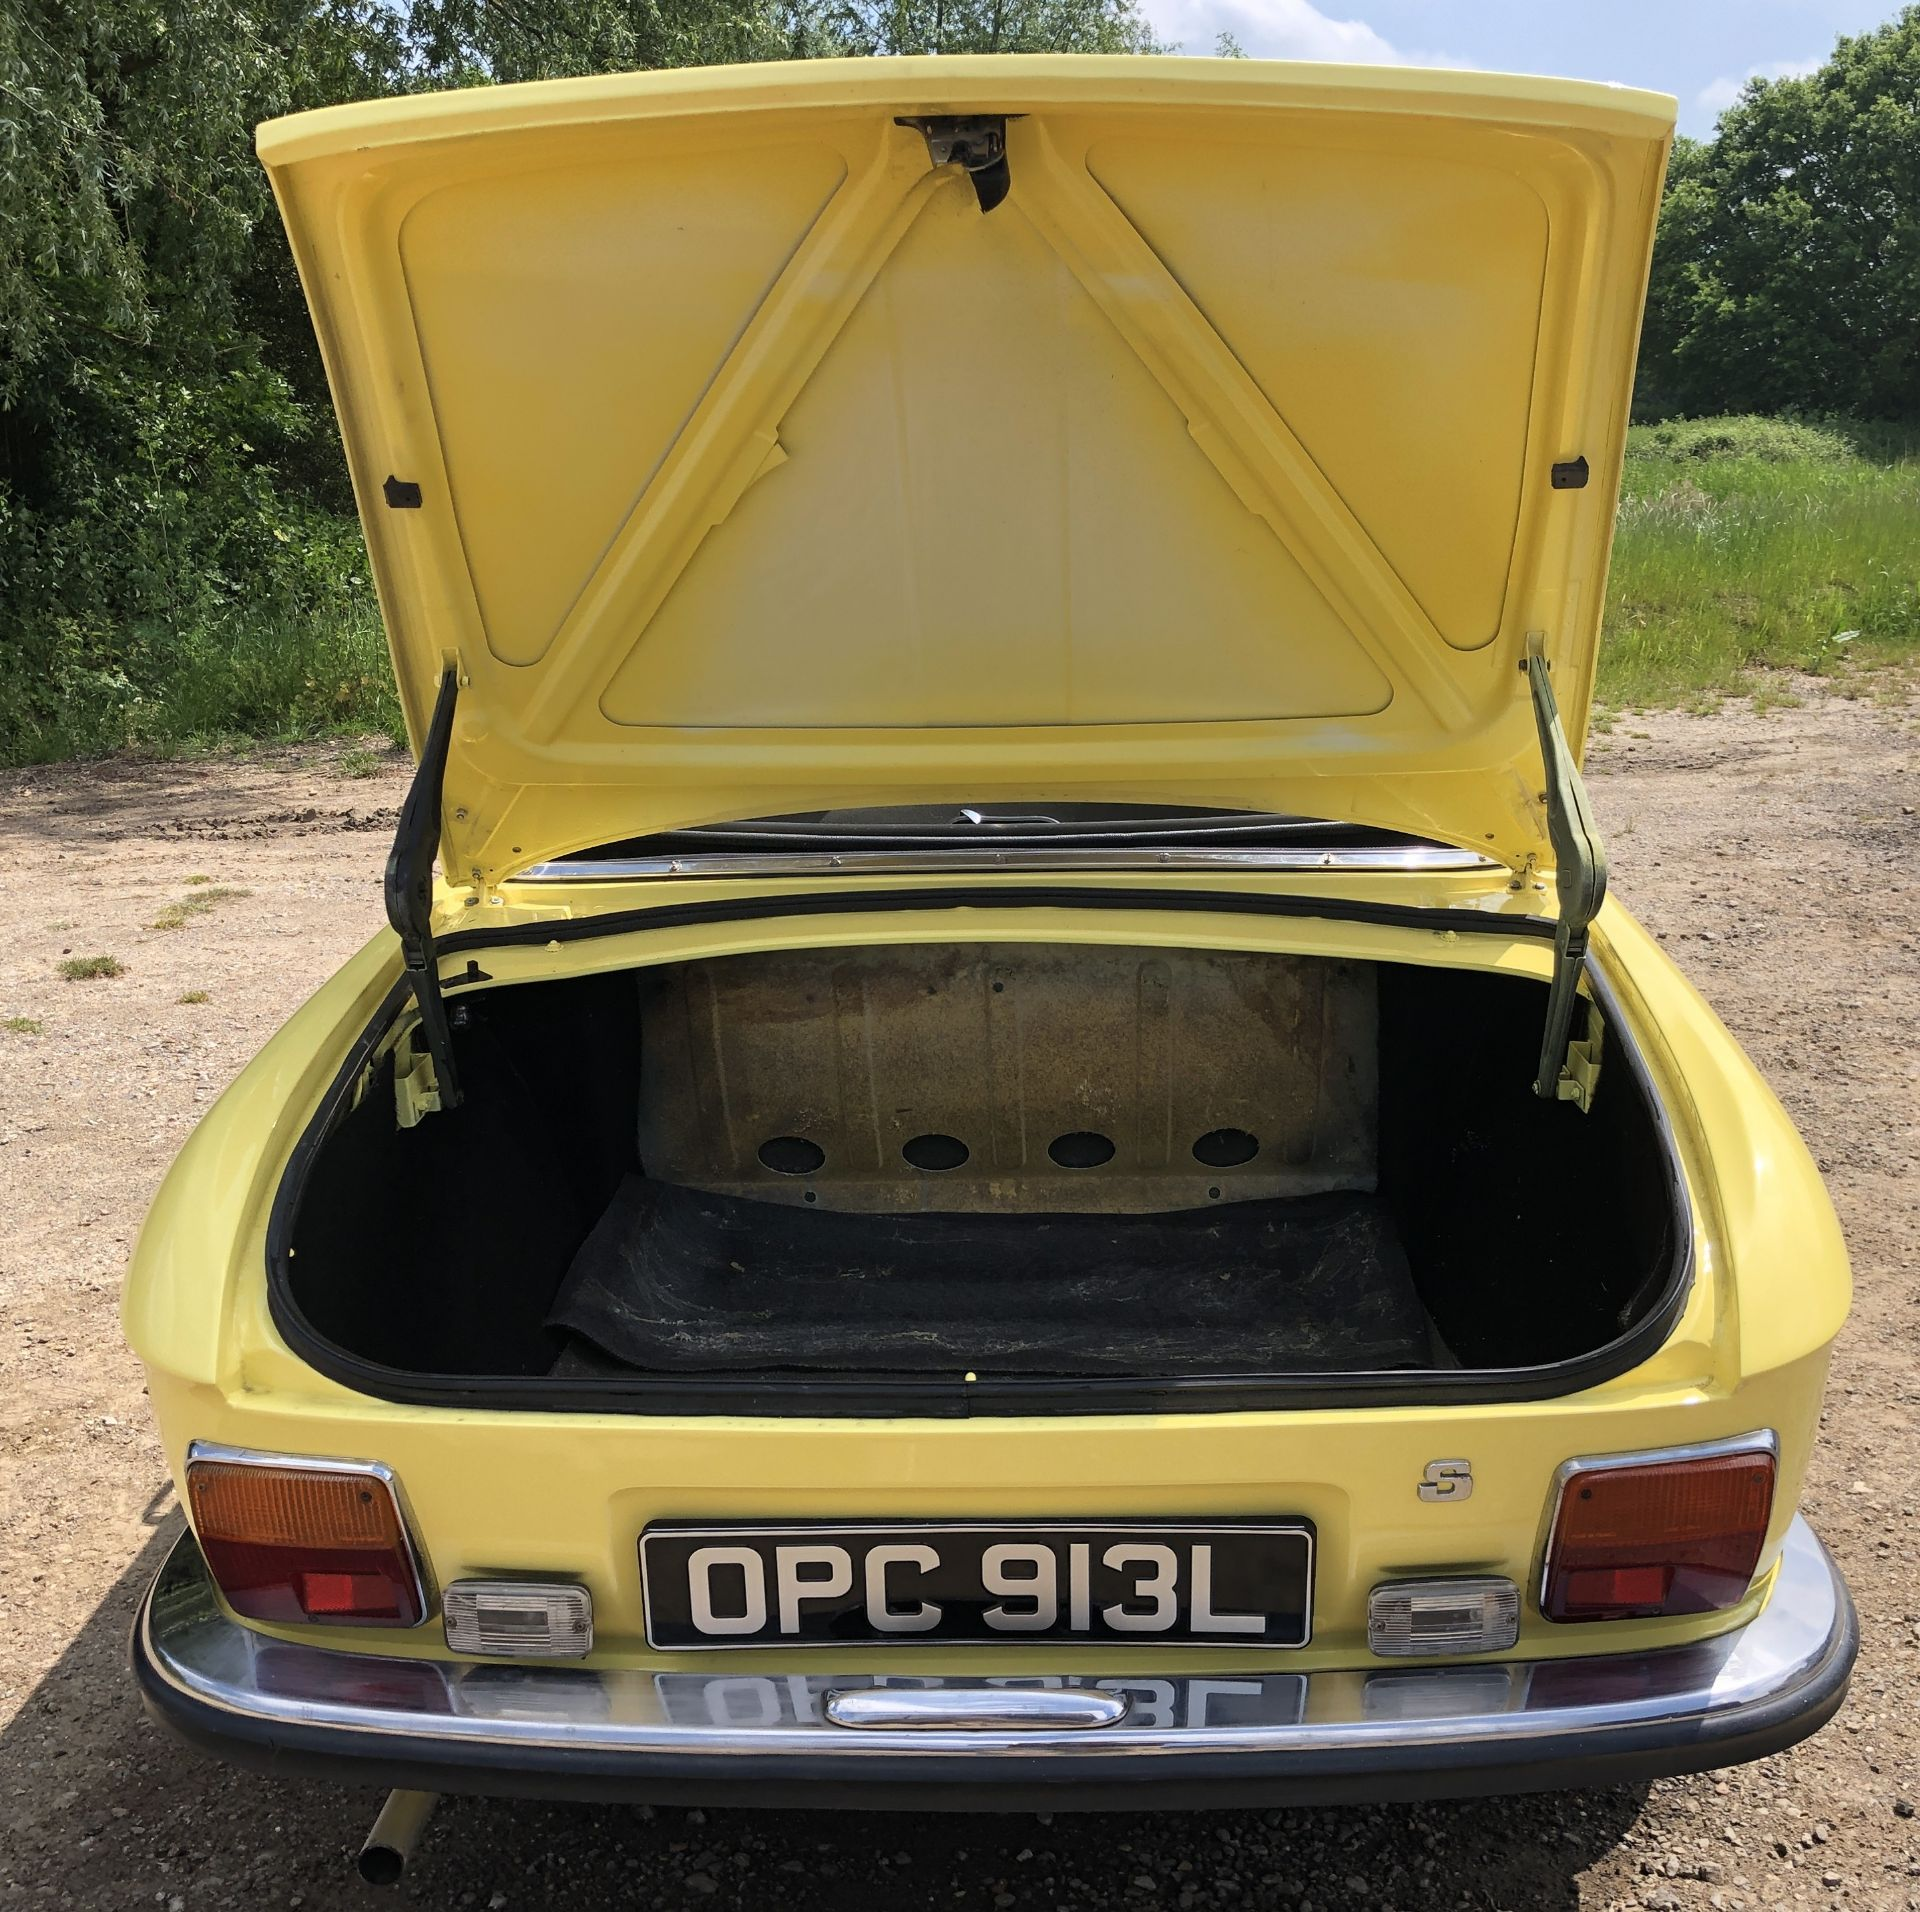 Rare Right Hand Drive Peugeot 304 Convertible, Registration OPC 913L, First Registered 2nd - Image 35 of 48